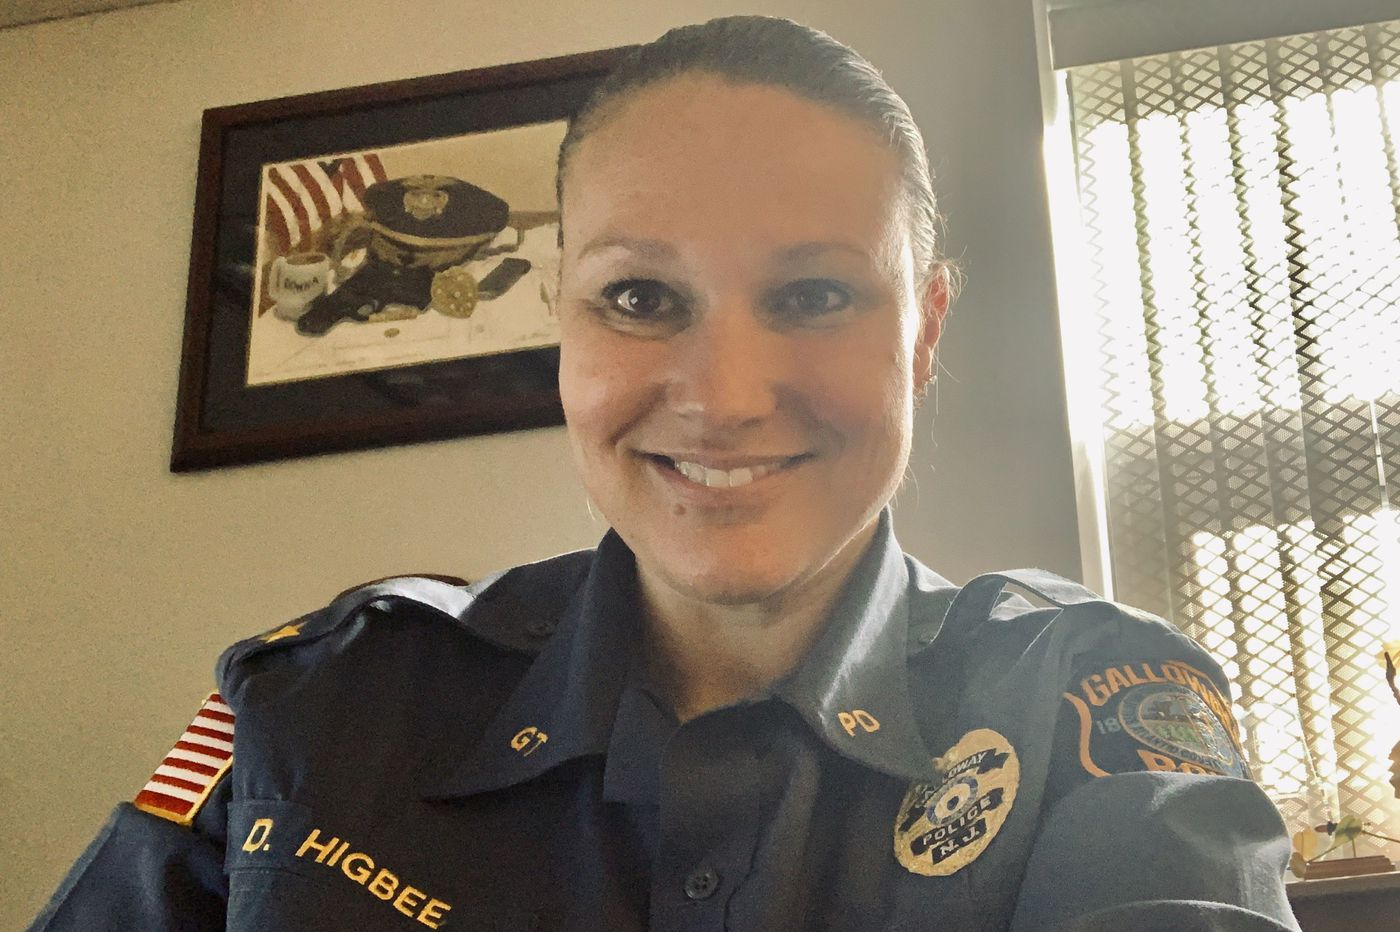 First female police chief in Atlantic County wants to open doors for other women